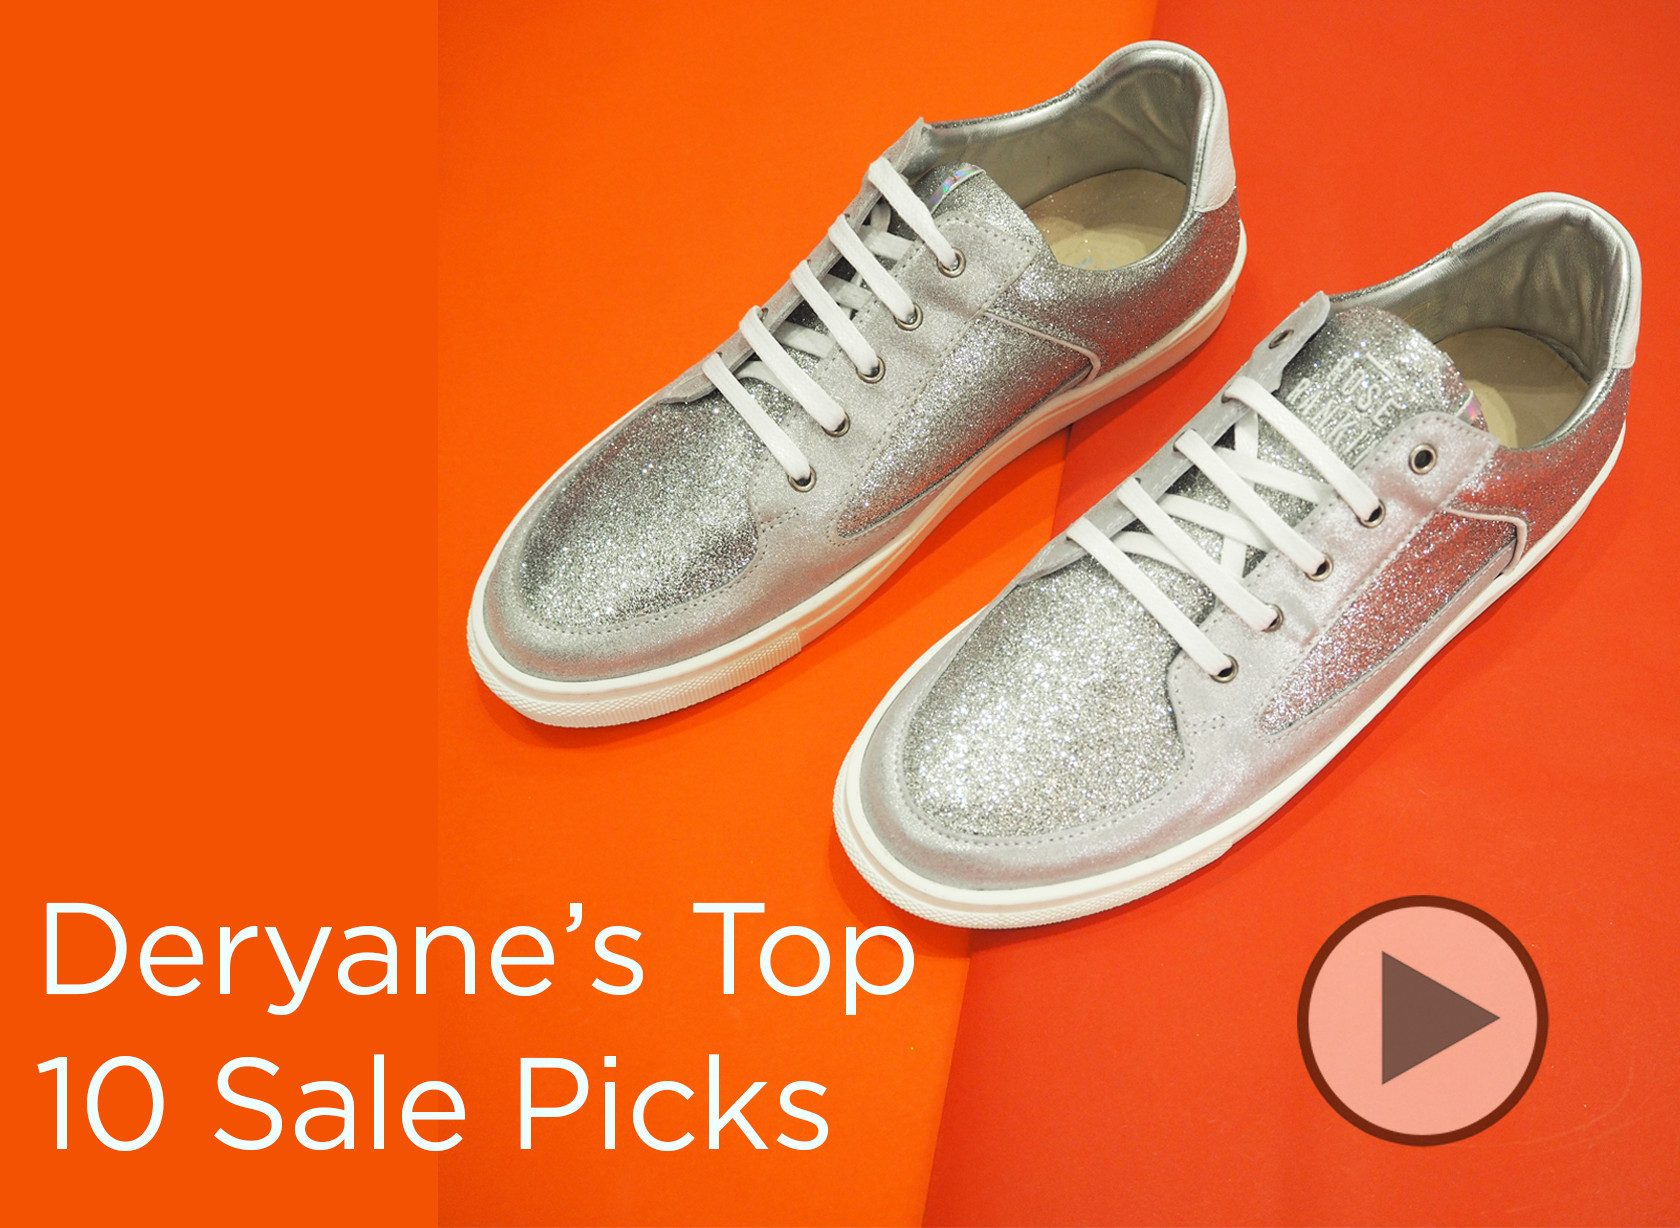 Deryane's Summer Sale Picks